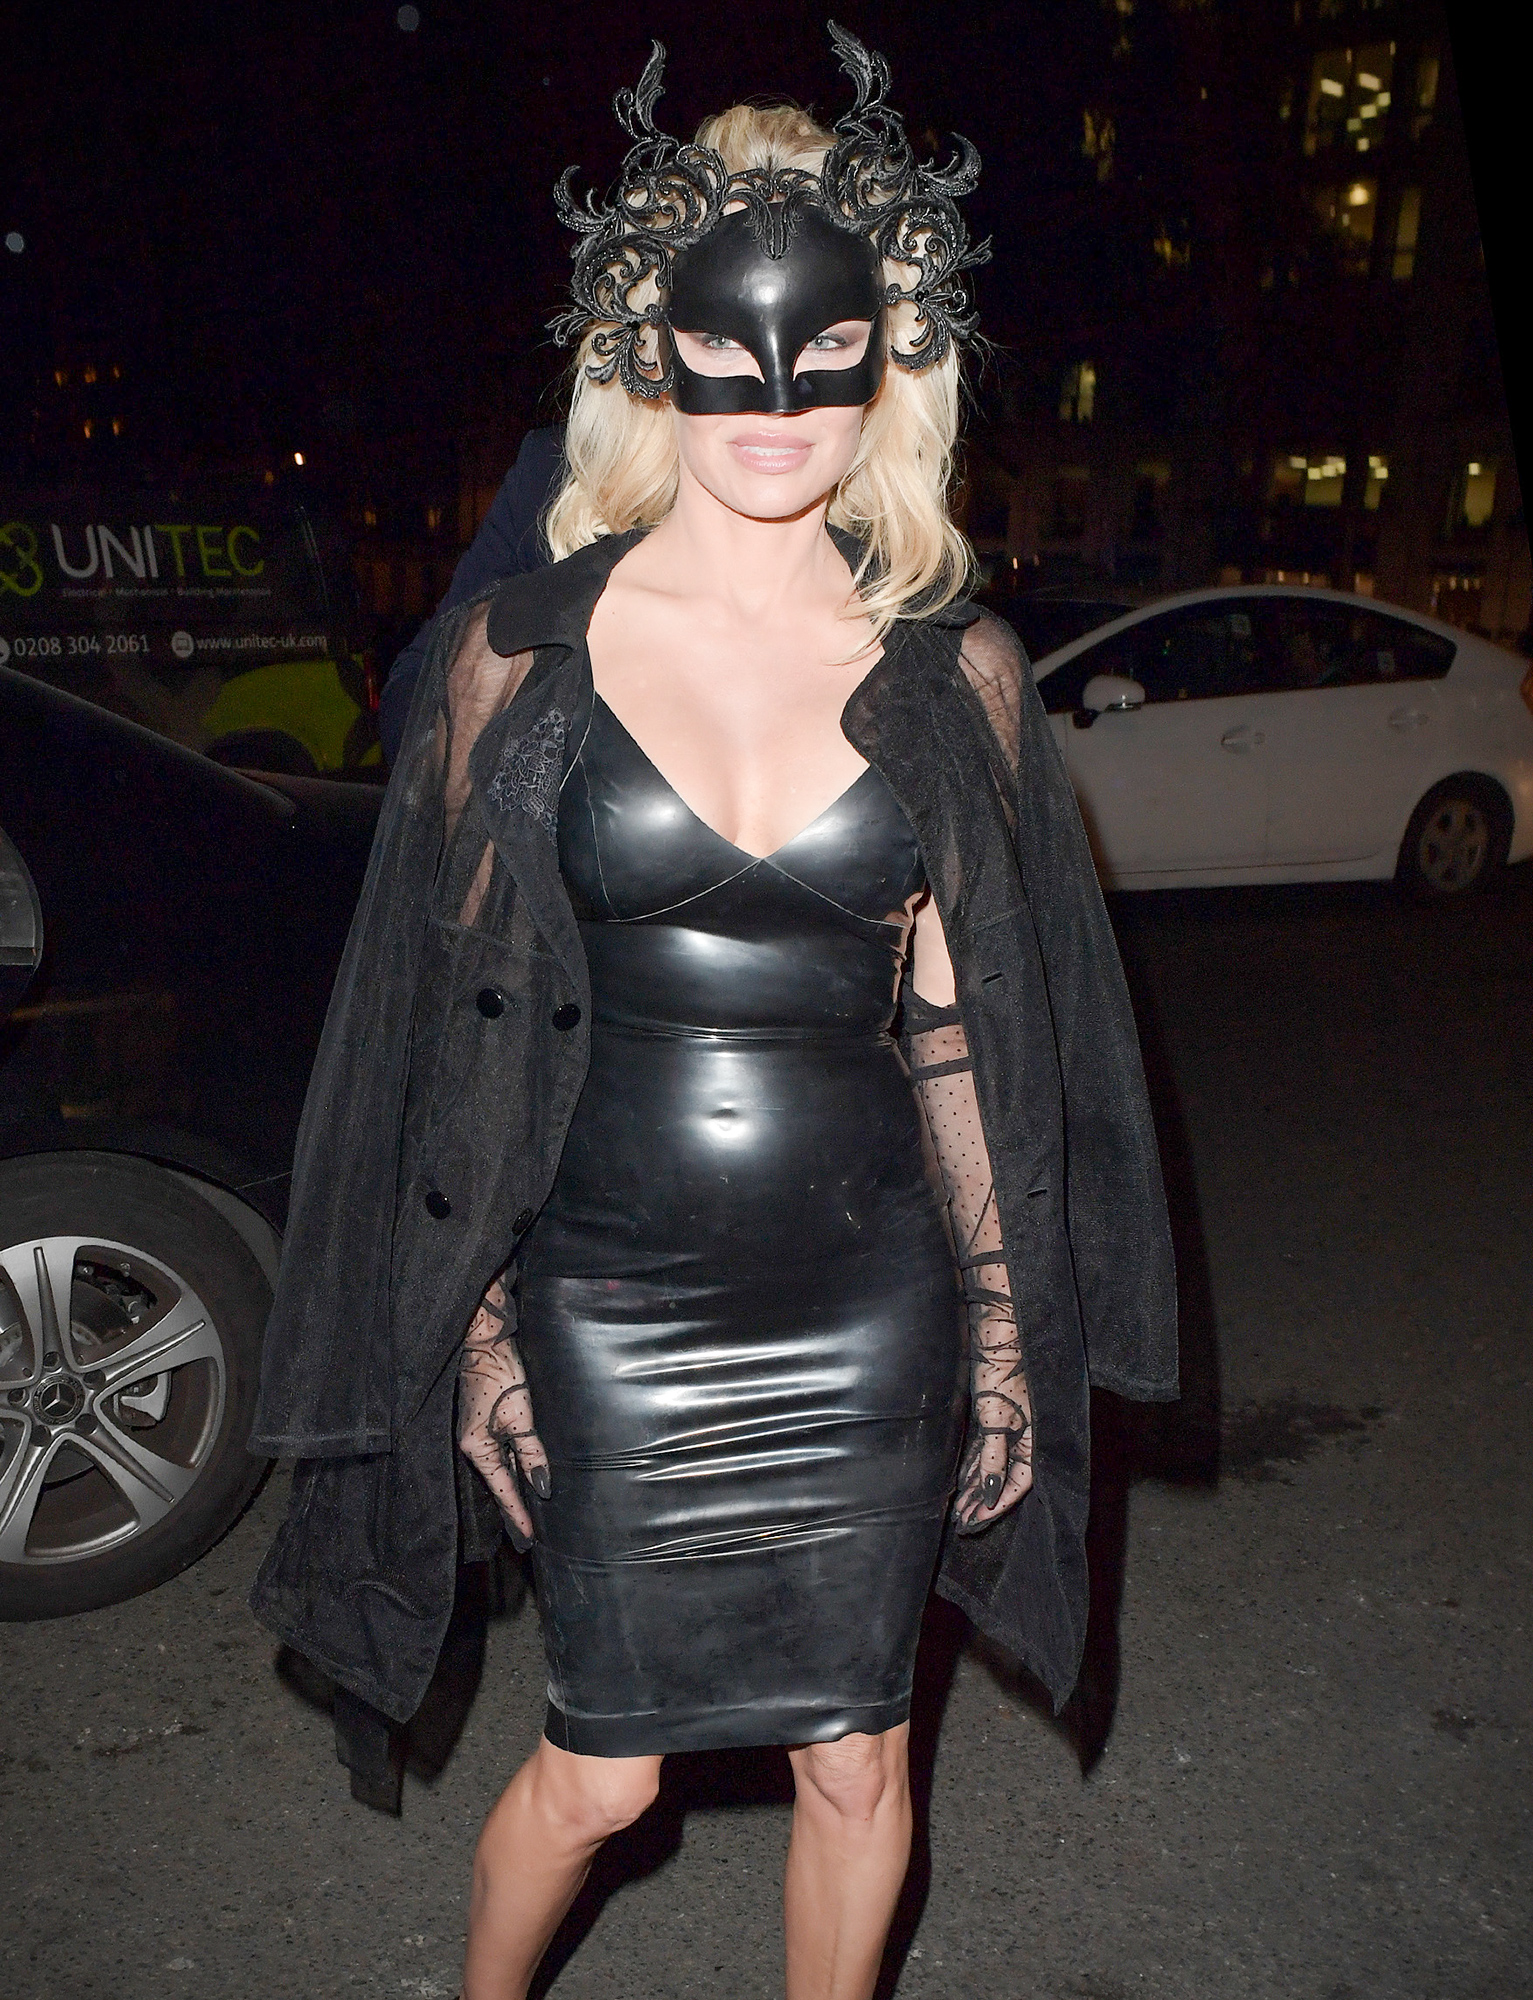 Pamela Anderson is Pictured in a Tight Black PVC Dress as she Arrives at Morton Club in London.